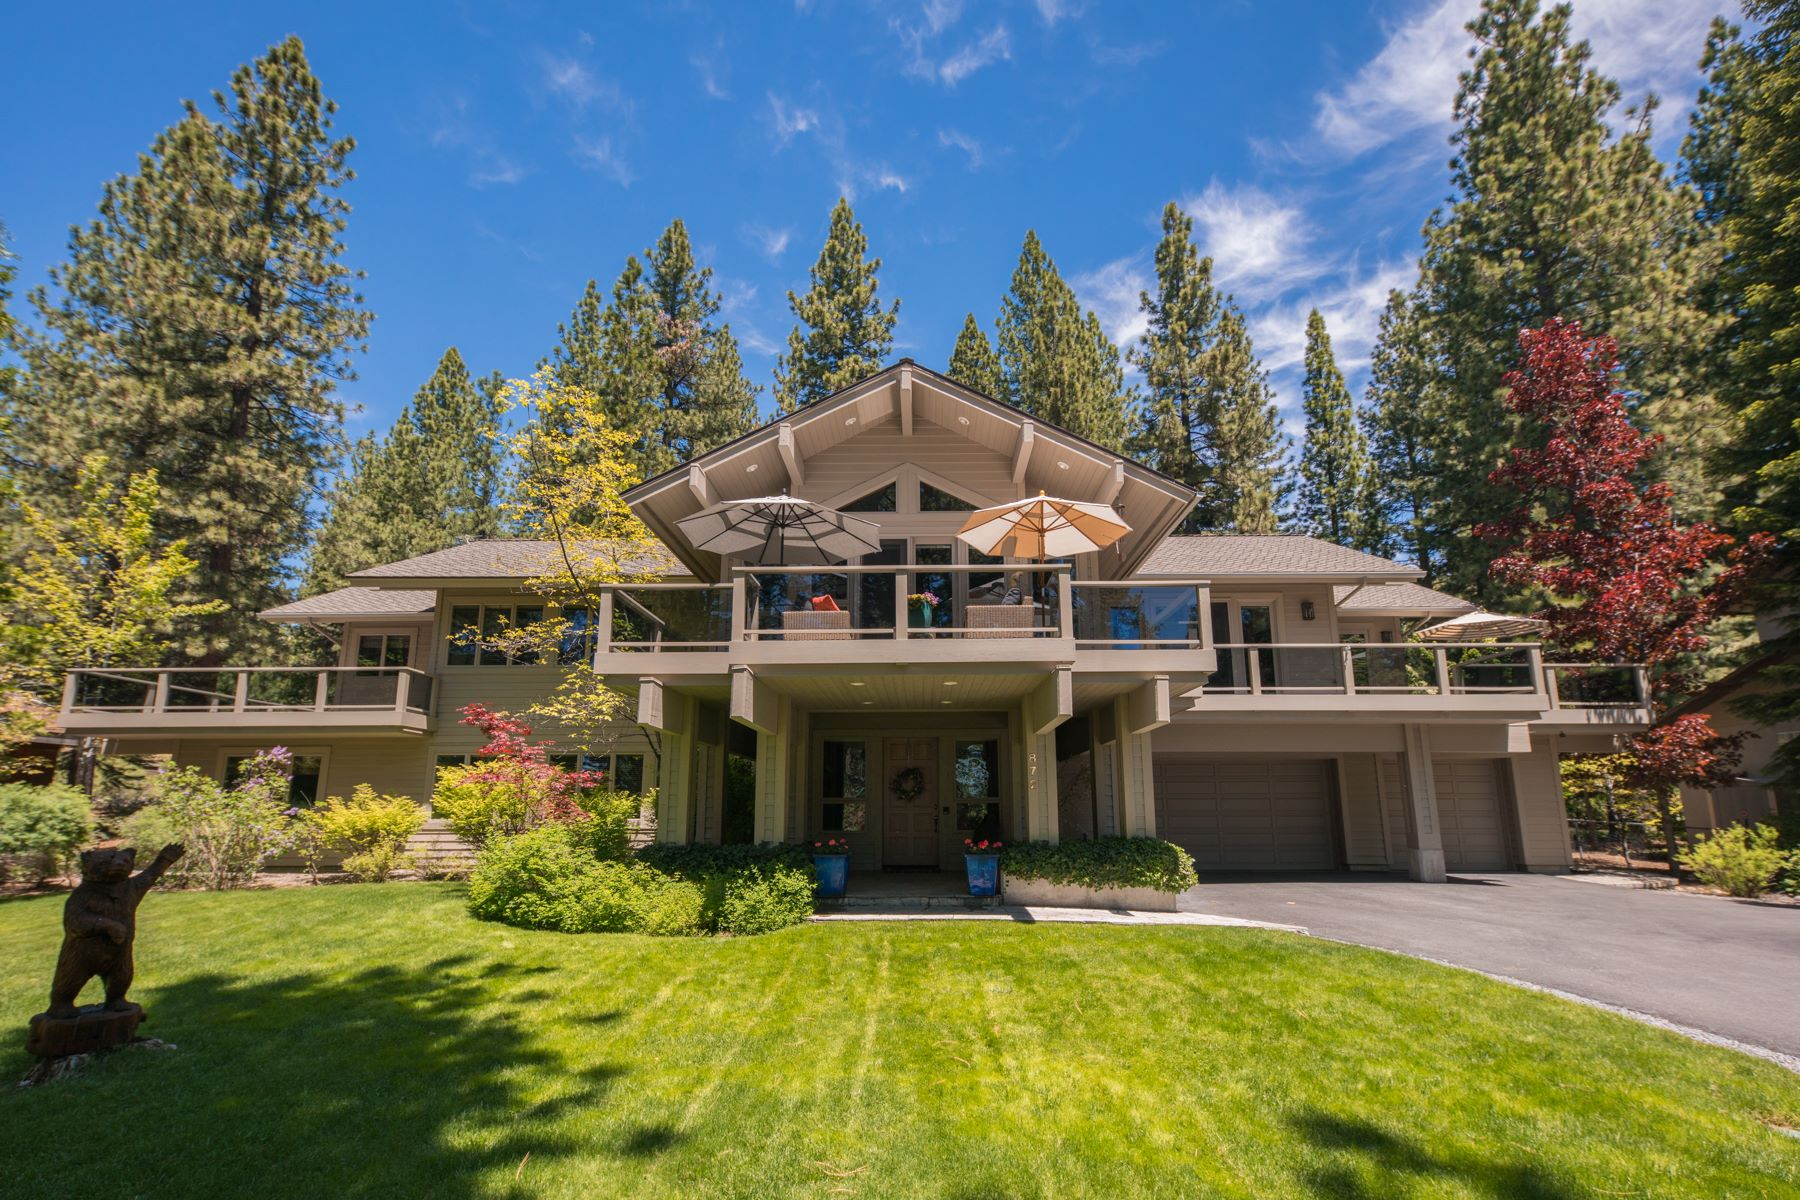 Single Family Homes por un Venta en 872 Lakeshore Blvd., Incline Village, Nevada 872 Lakeshore Blvd. Incline Village, Nevada 89451 Estados Unidos